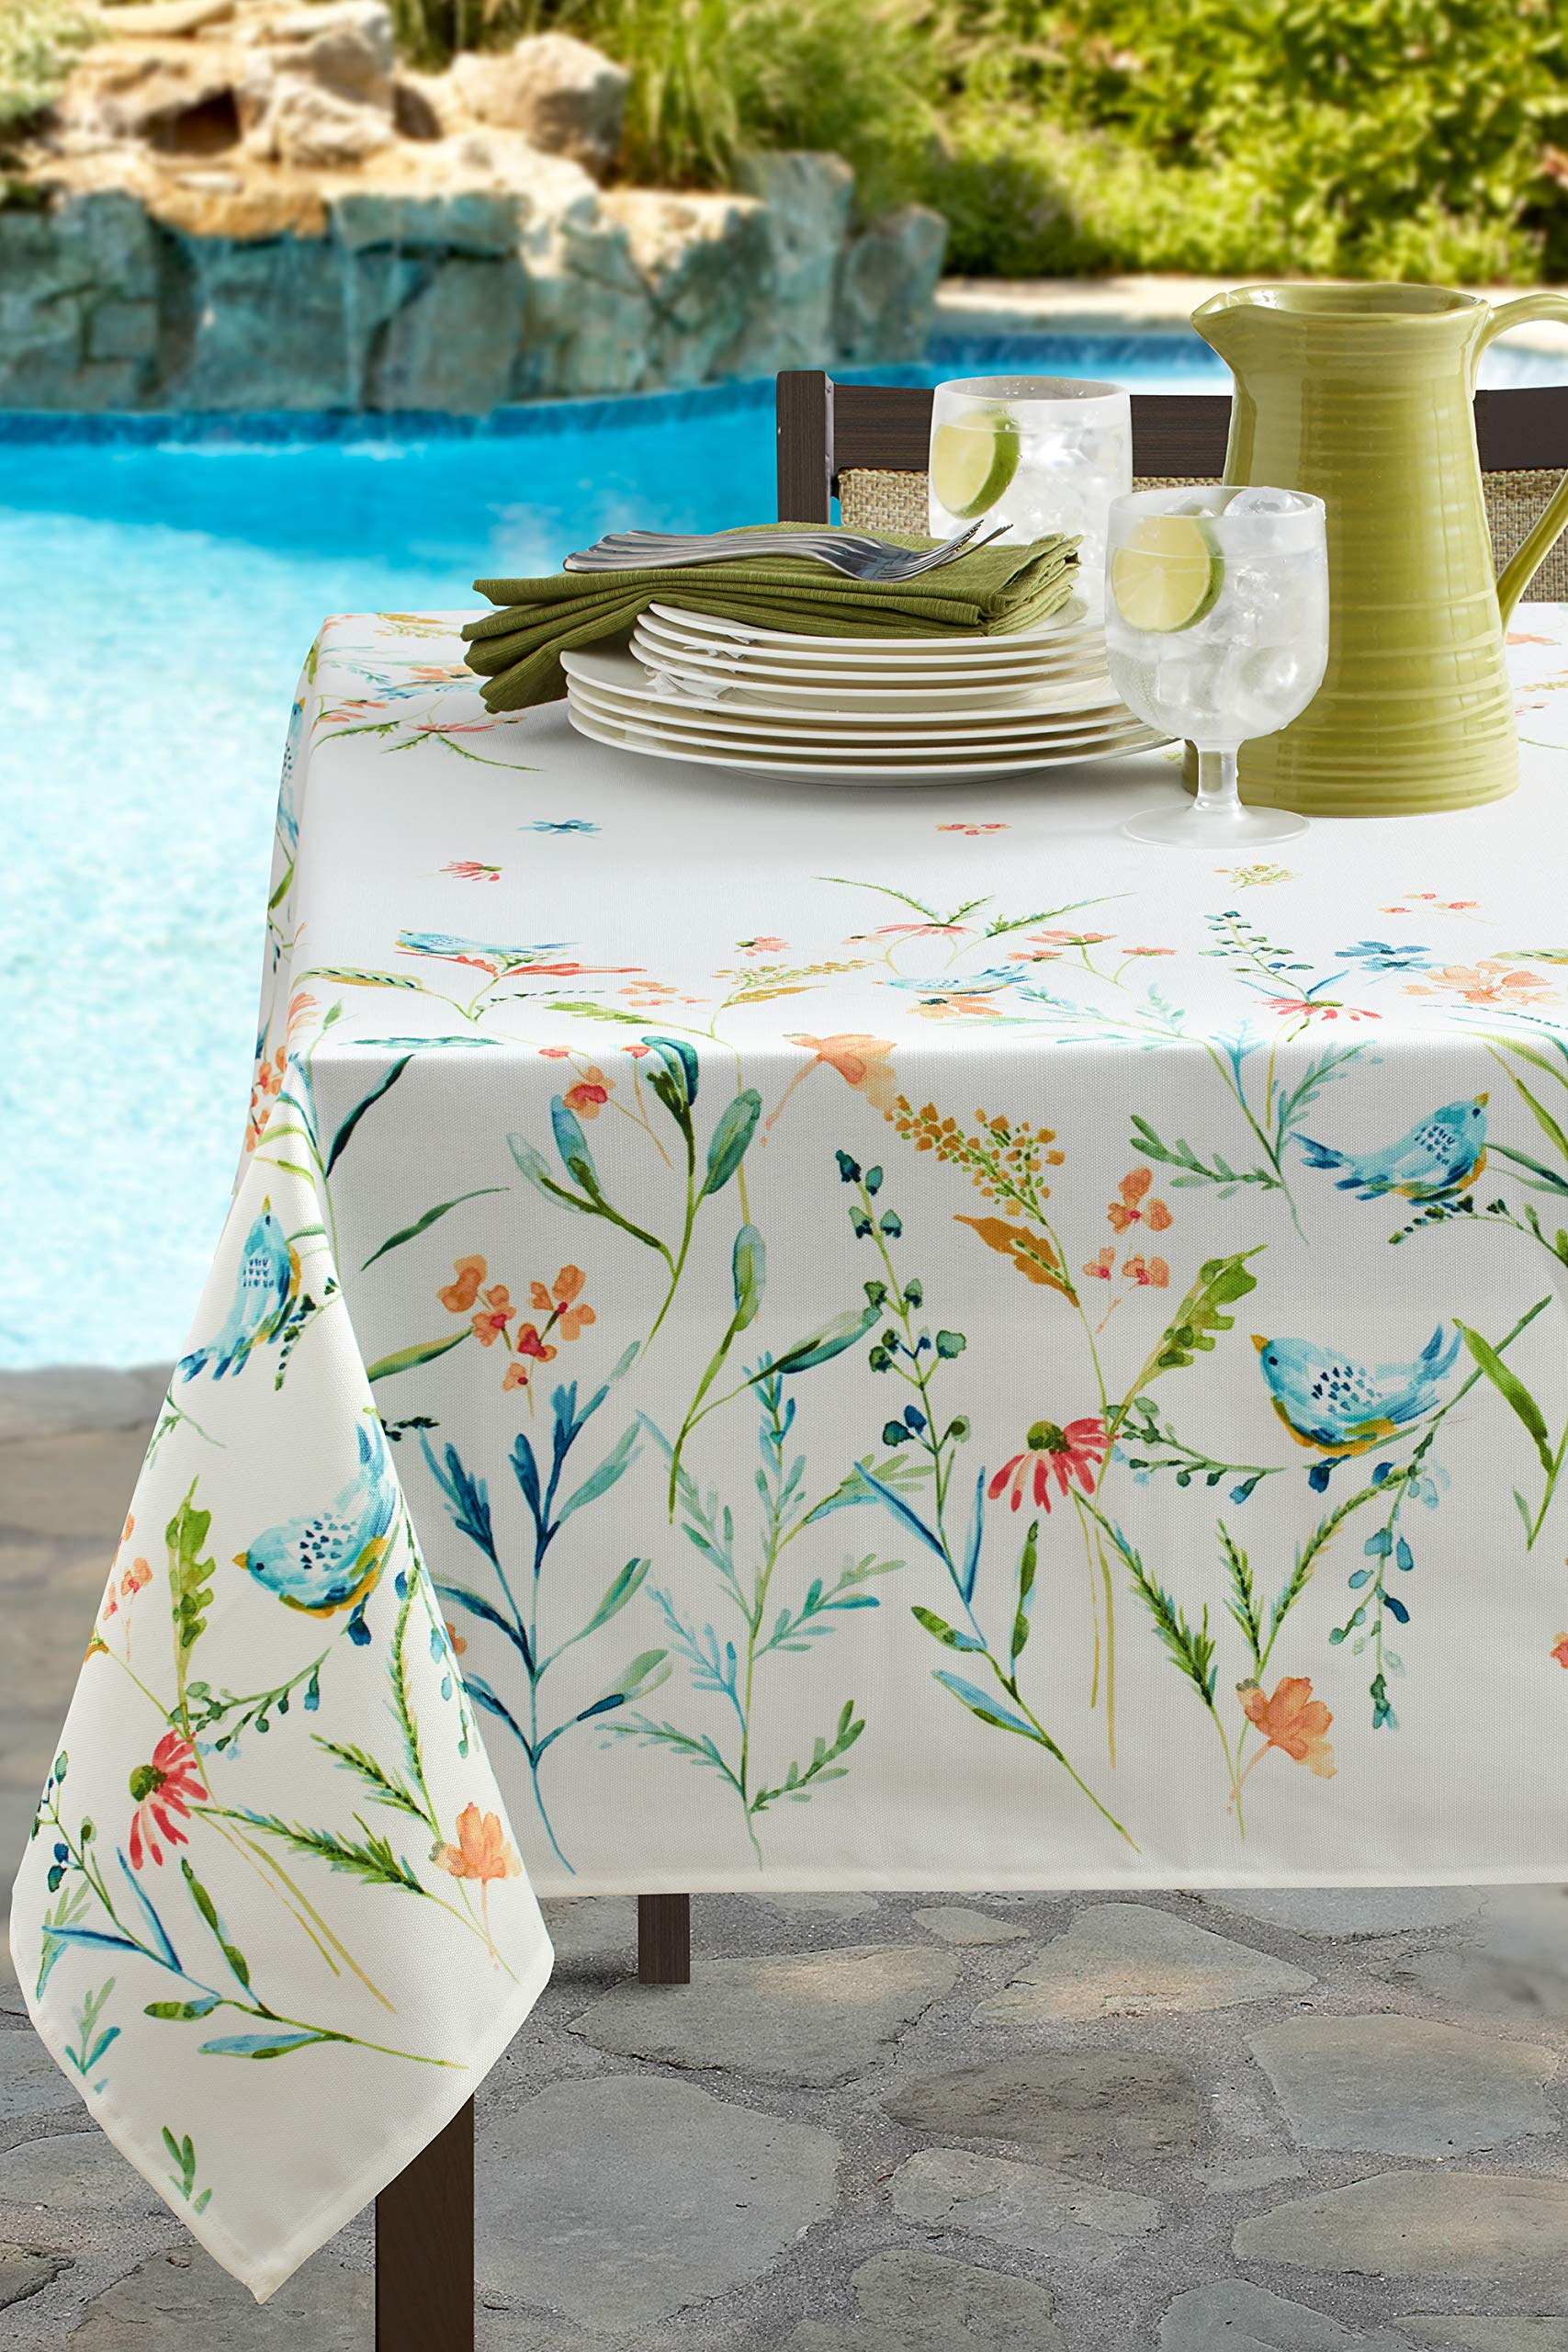 Benson Mills Indoor Outdoor Spillproof Tablecloth for Spring/Summer/Party/Picnic (Milly, 60'' X 120'' Rectangular)